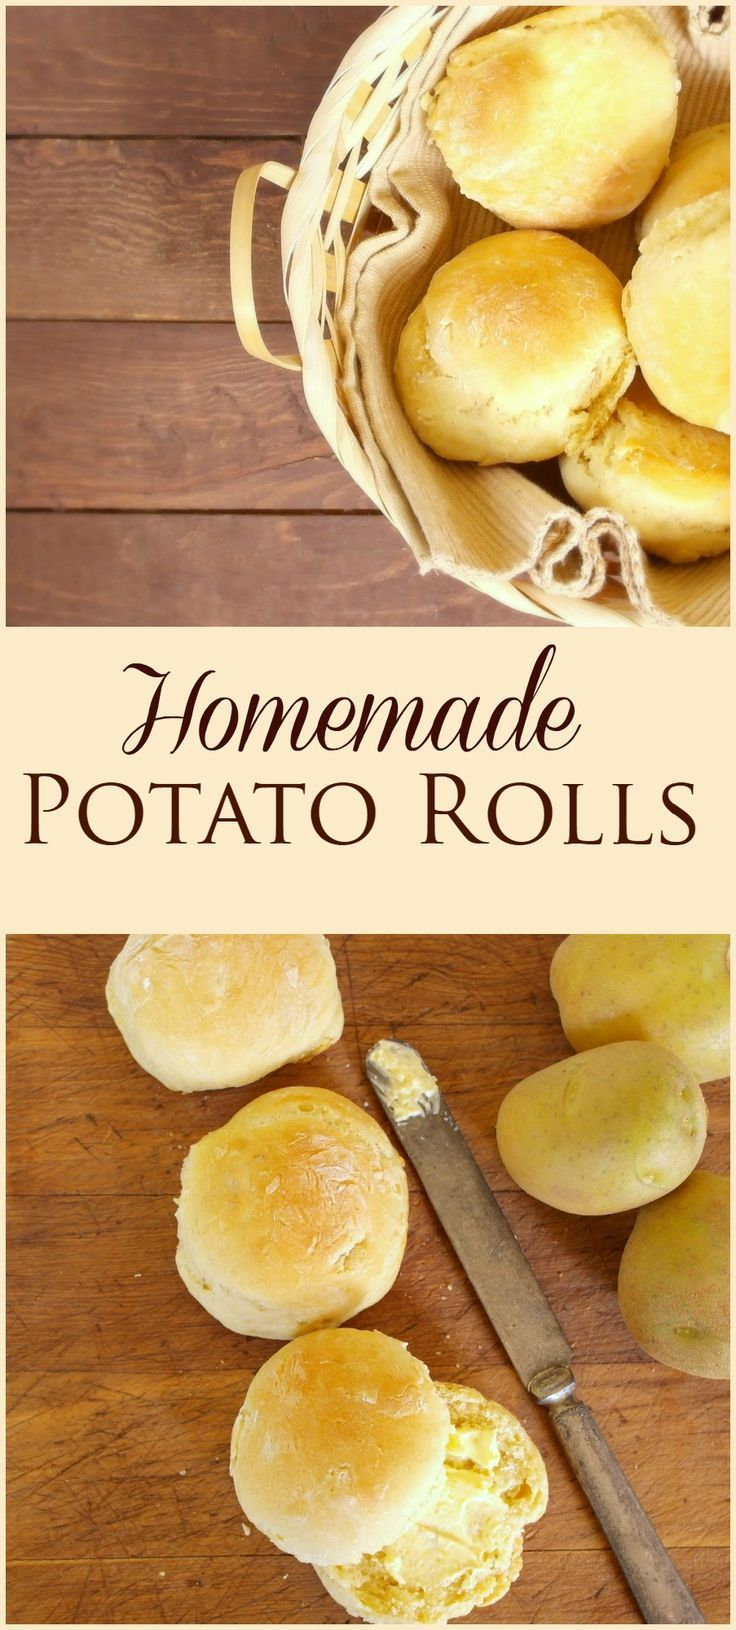 Potato rolls are a favorite at every family gathering. They are delicious and perfect additions to any holiday meal, or just alongside a Sunday dinner. - Teaspoon Of Goodness